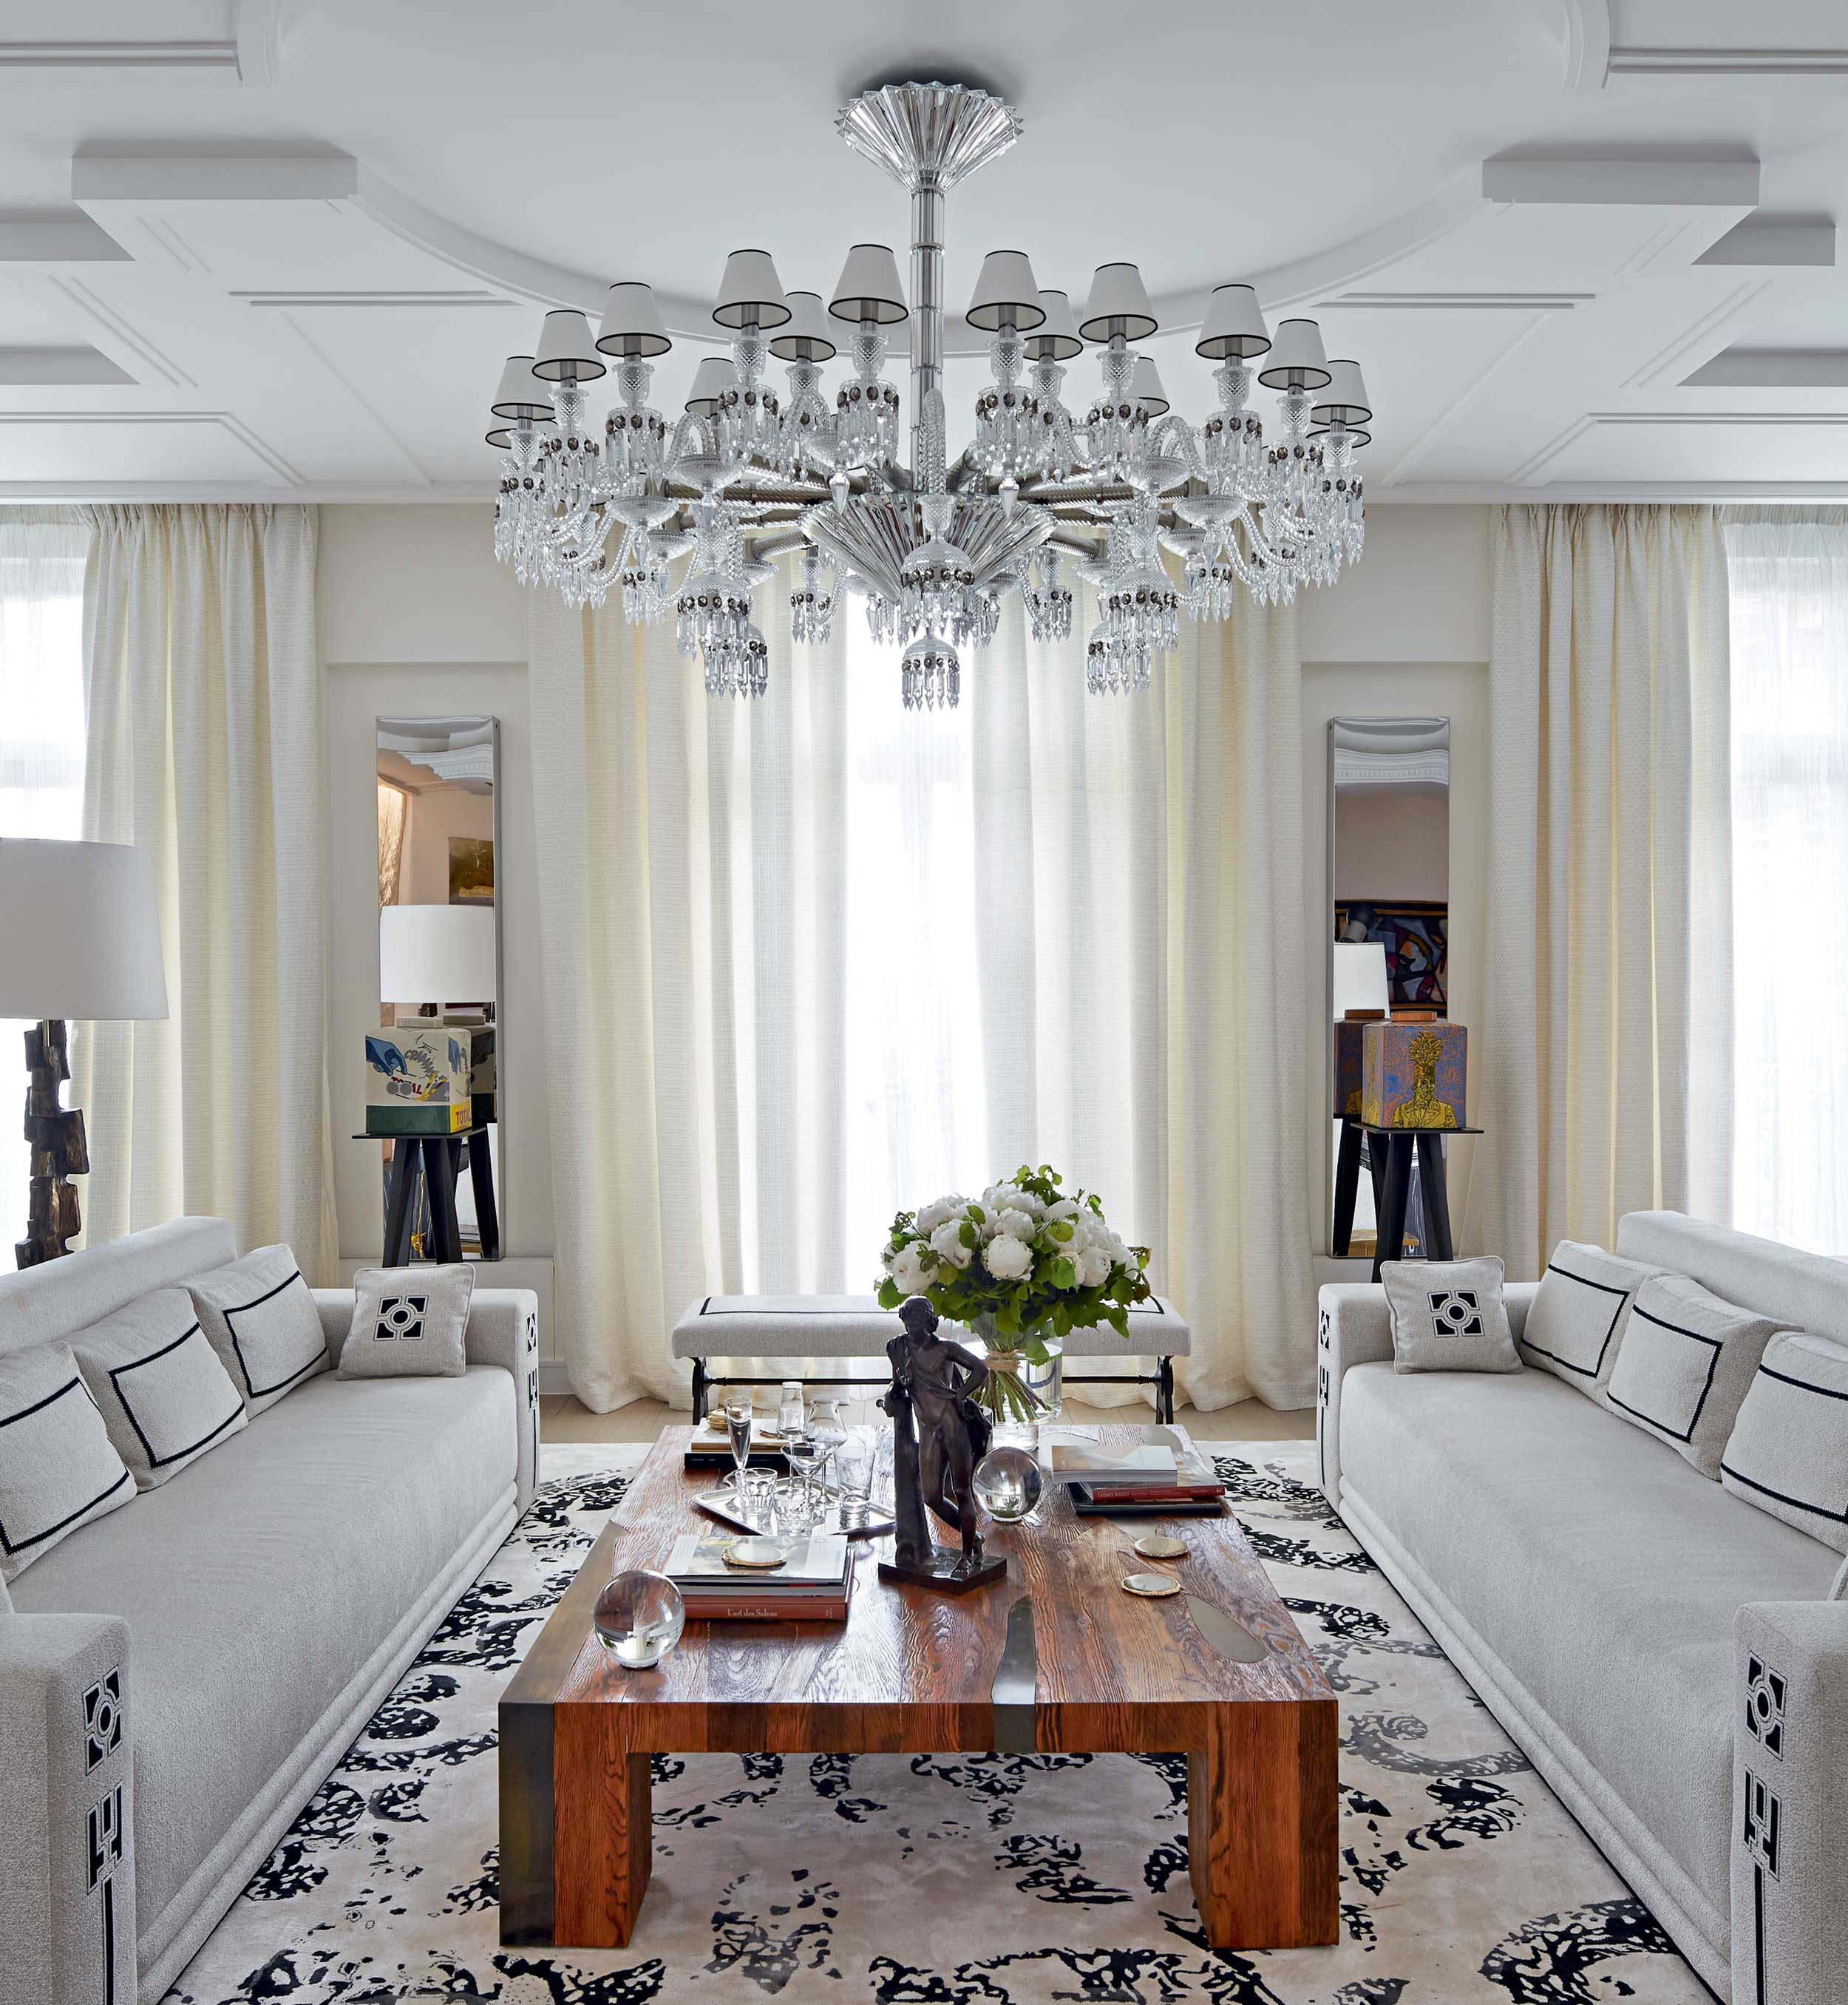 """Stéphanie Coutas, designer of the apartment's current guise is known for her """"contemporary grand"""" style, an aesthetic that chimes with the classic proportions and period details of this four-bedroom apartment, which now has the cachet of a stylish Parisian palace."""